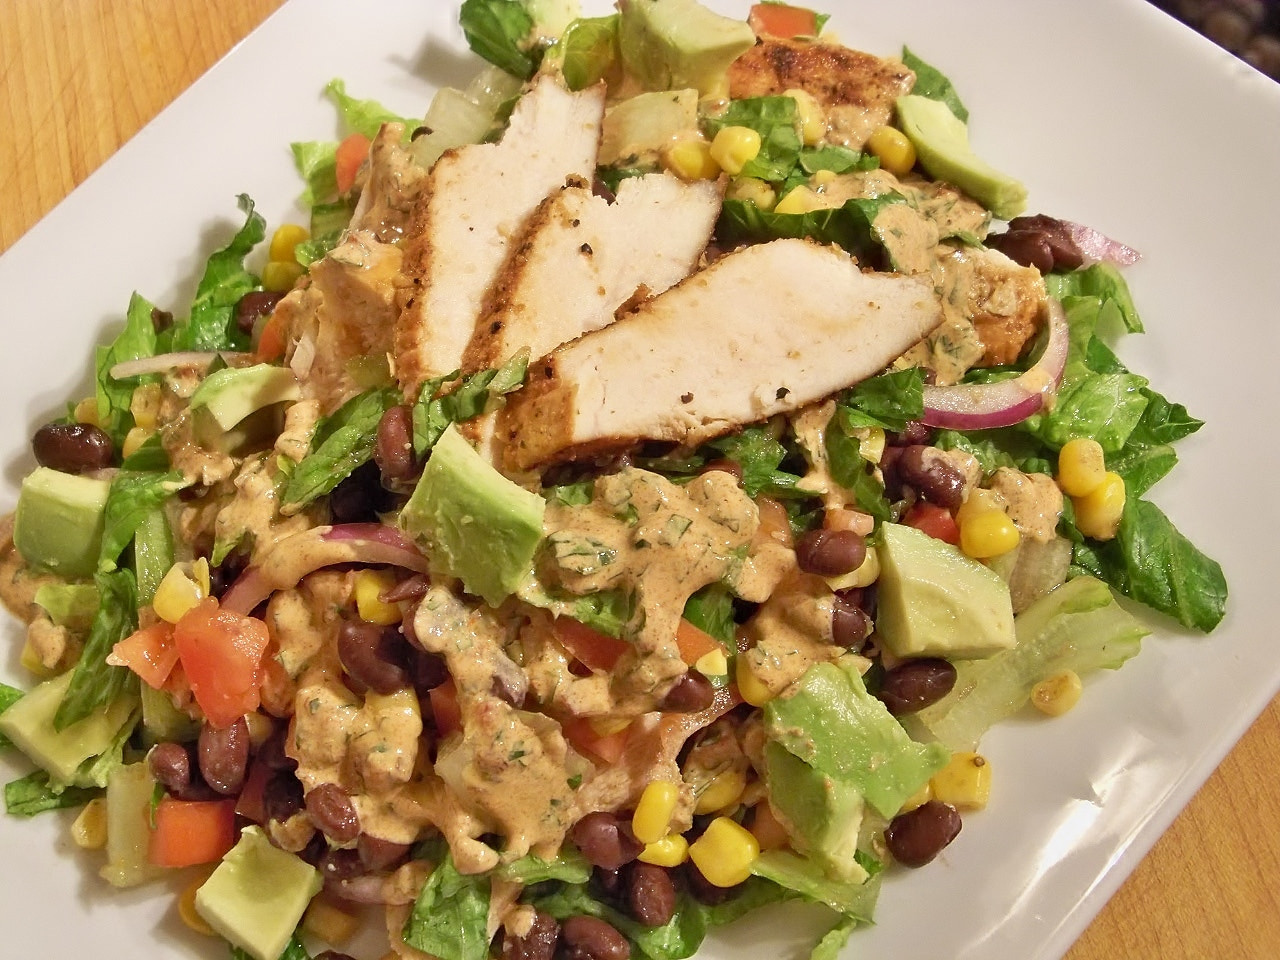 Chipotle Chicken Salad  Chipotle Chicken Taco Salad – Gourmet Day To Day